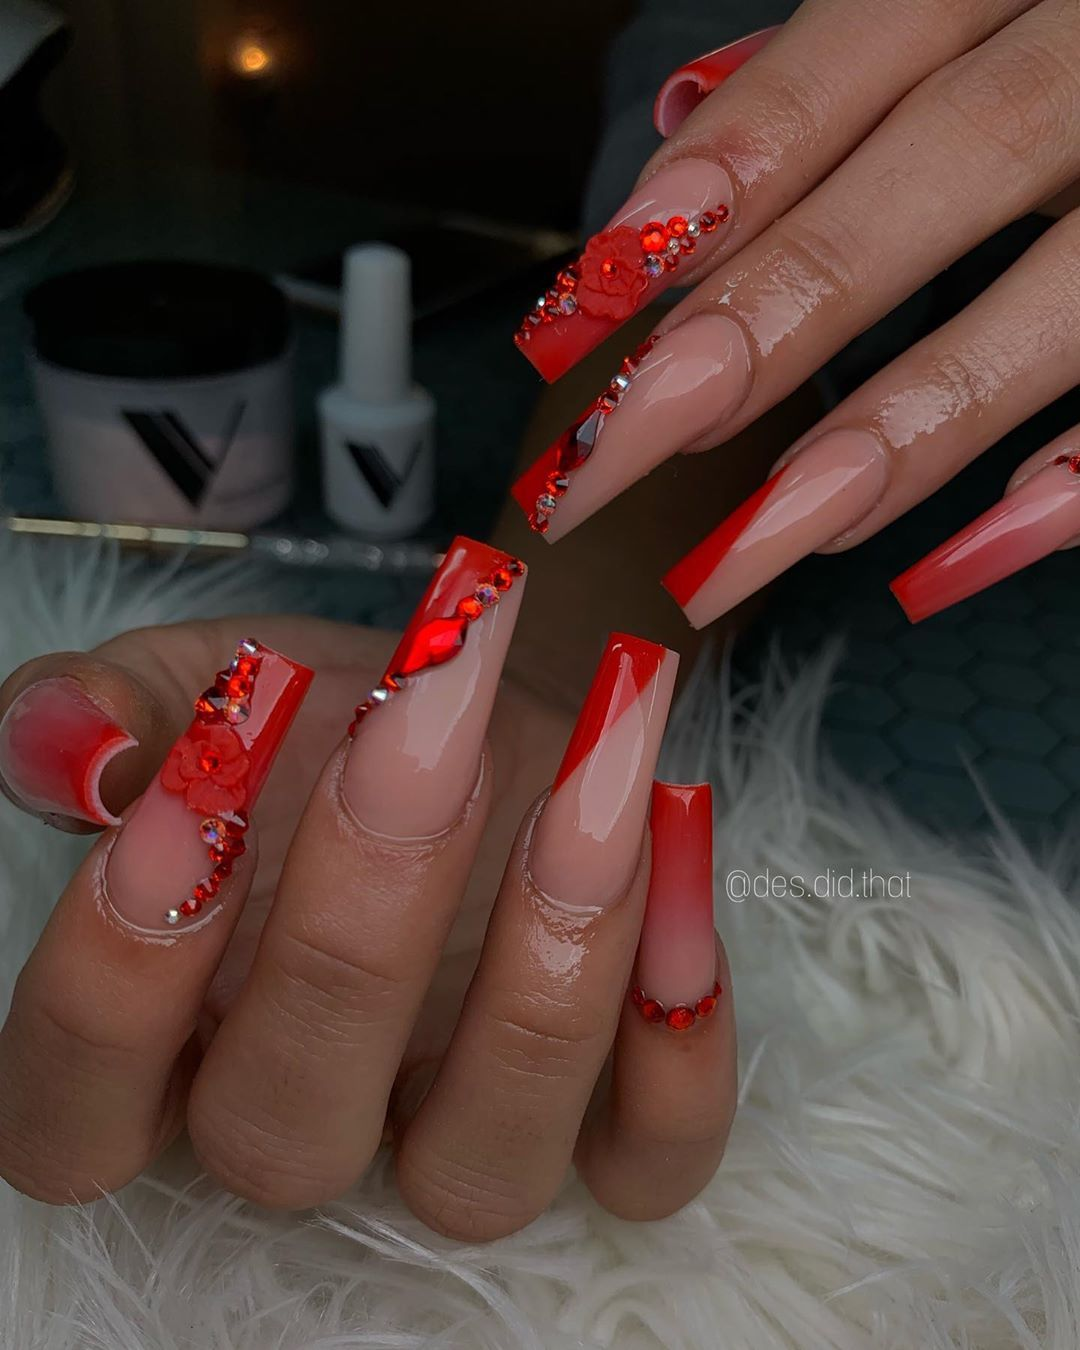 Desteny Jones 20 Y O On Instagram Desdidthat Use Code Desdidthat For Off Angelcry Red Acrylic Nails Long Acrylic Nails Coffin Vday Nails